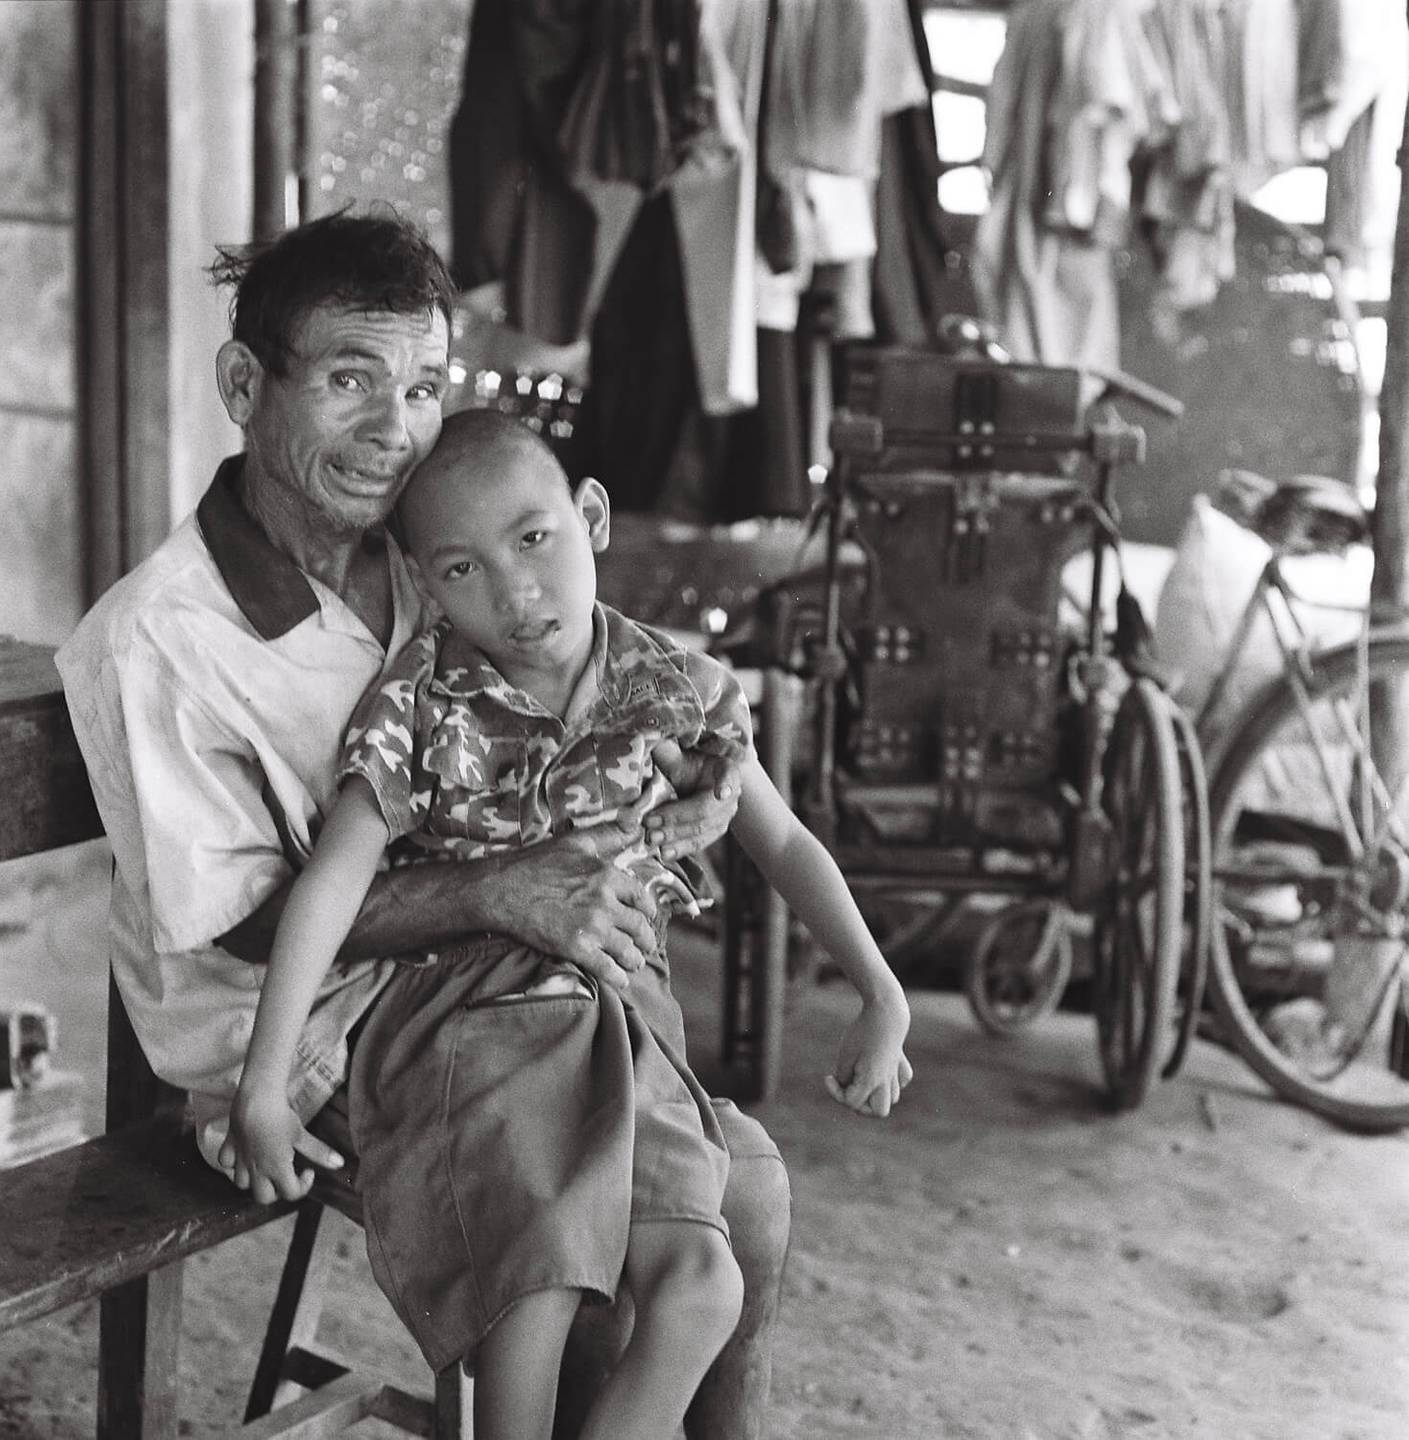 An older Asian man with a deformed child on his lap.